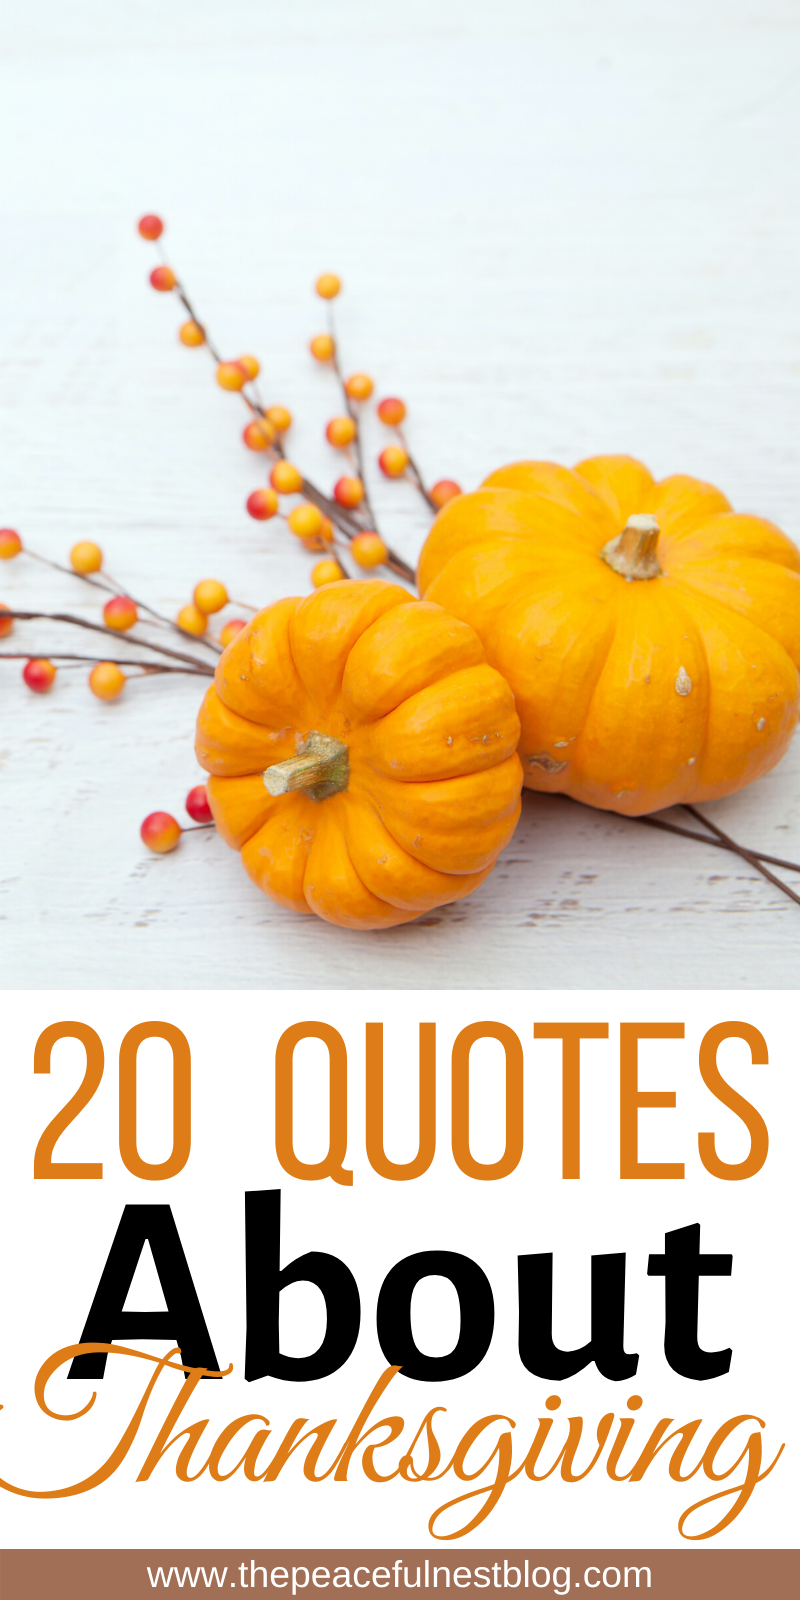 20 Quotes About Thanksgiving In 2020 Thankful Quotes Thanksgiving Quotes Holiday Quotes